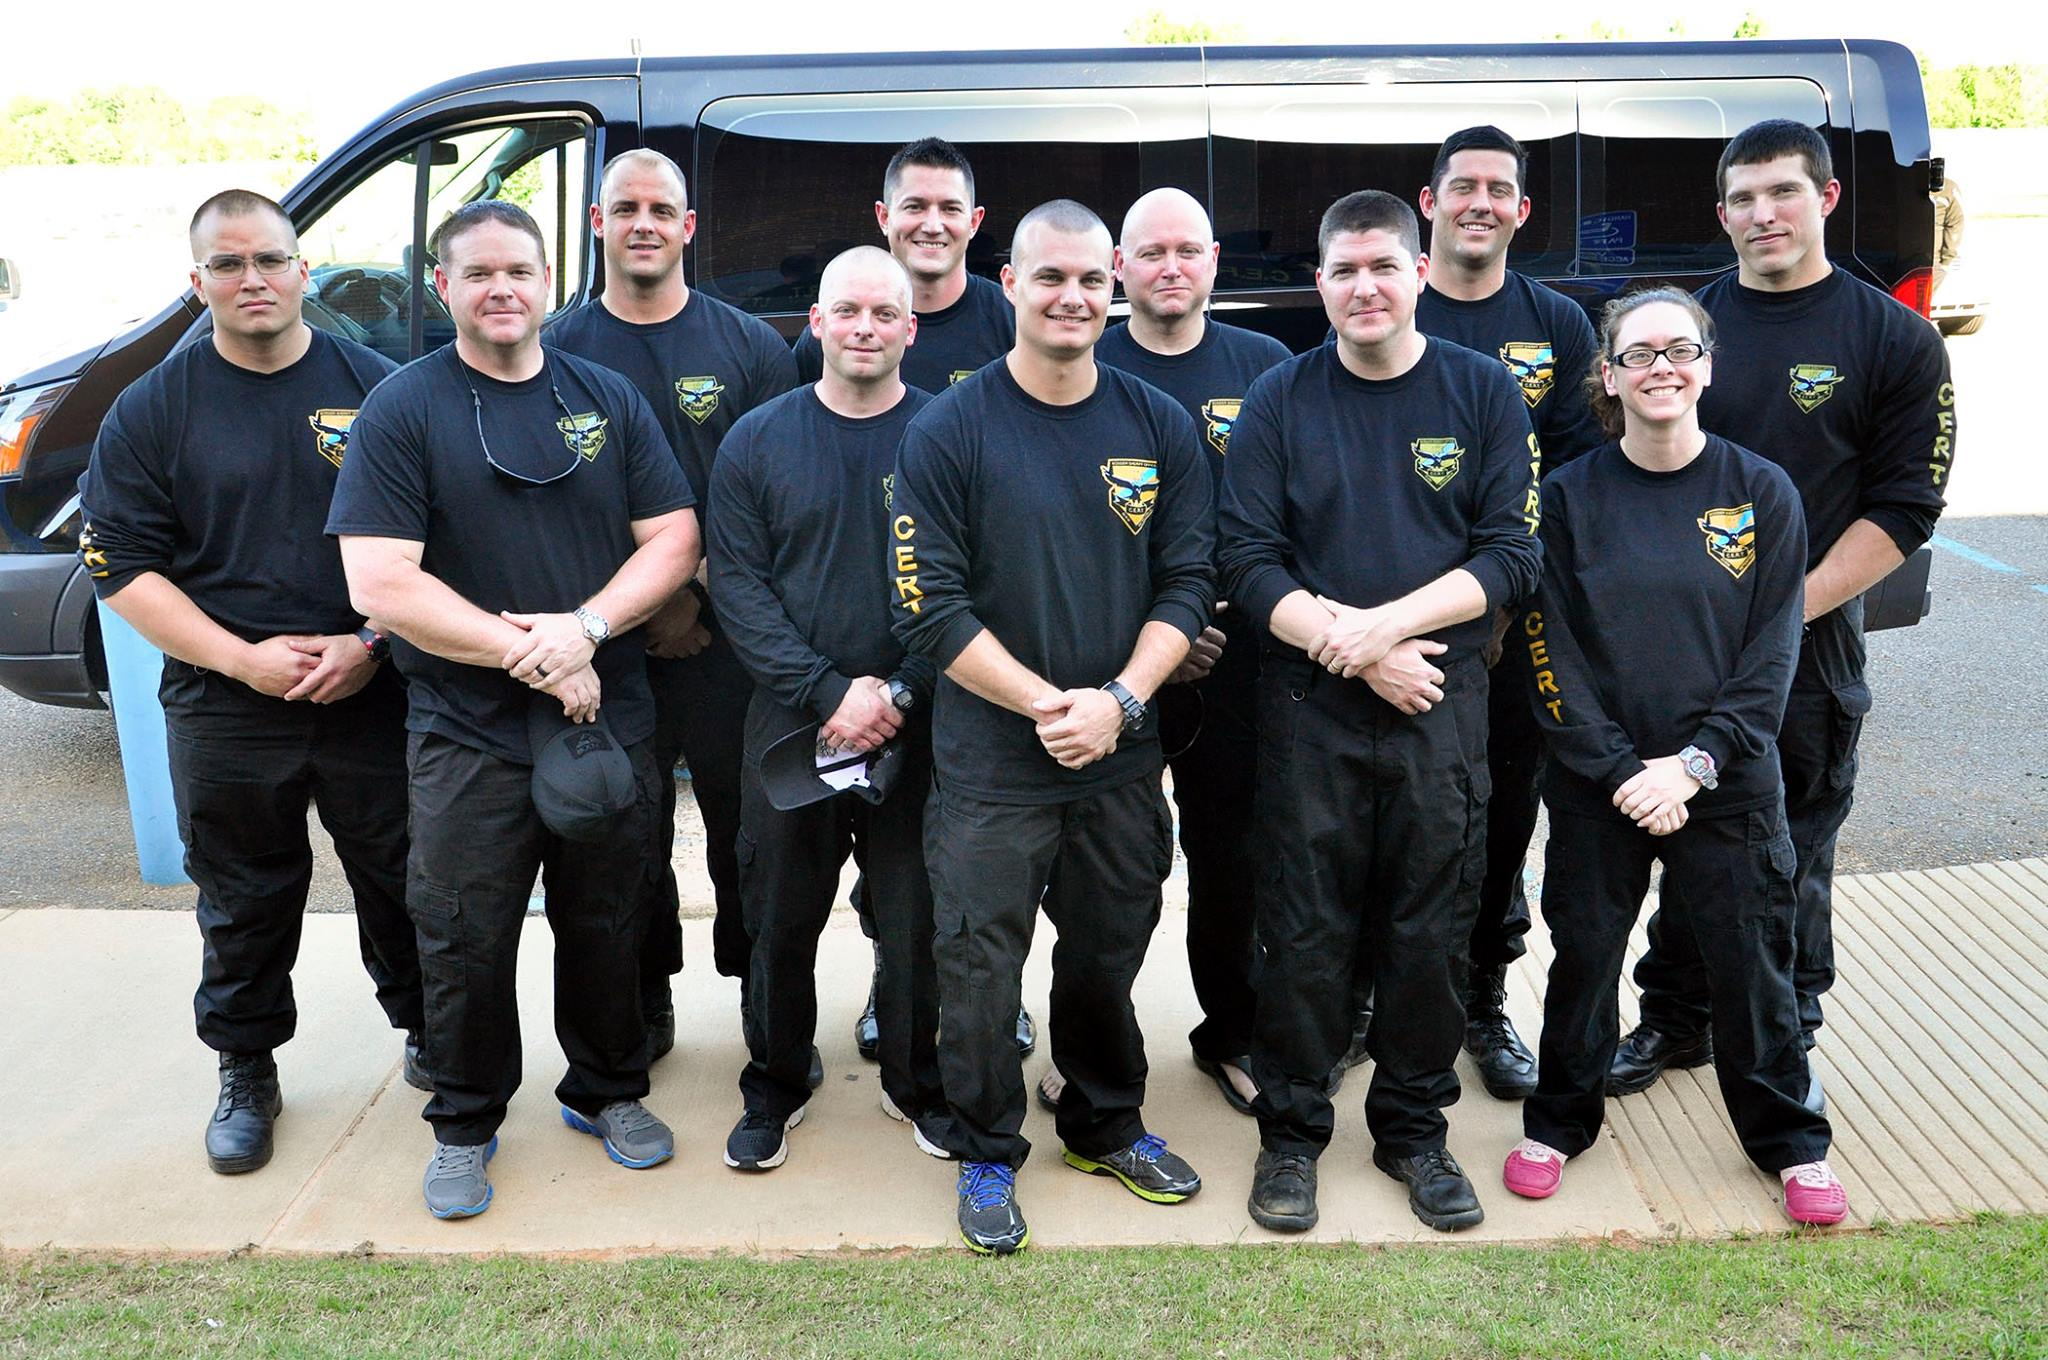 Courtesy Photo | The CERT team poses for a group photo just before leaving on the 15-hour journey to the competition.